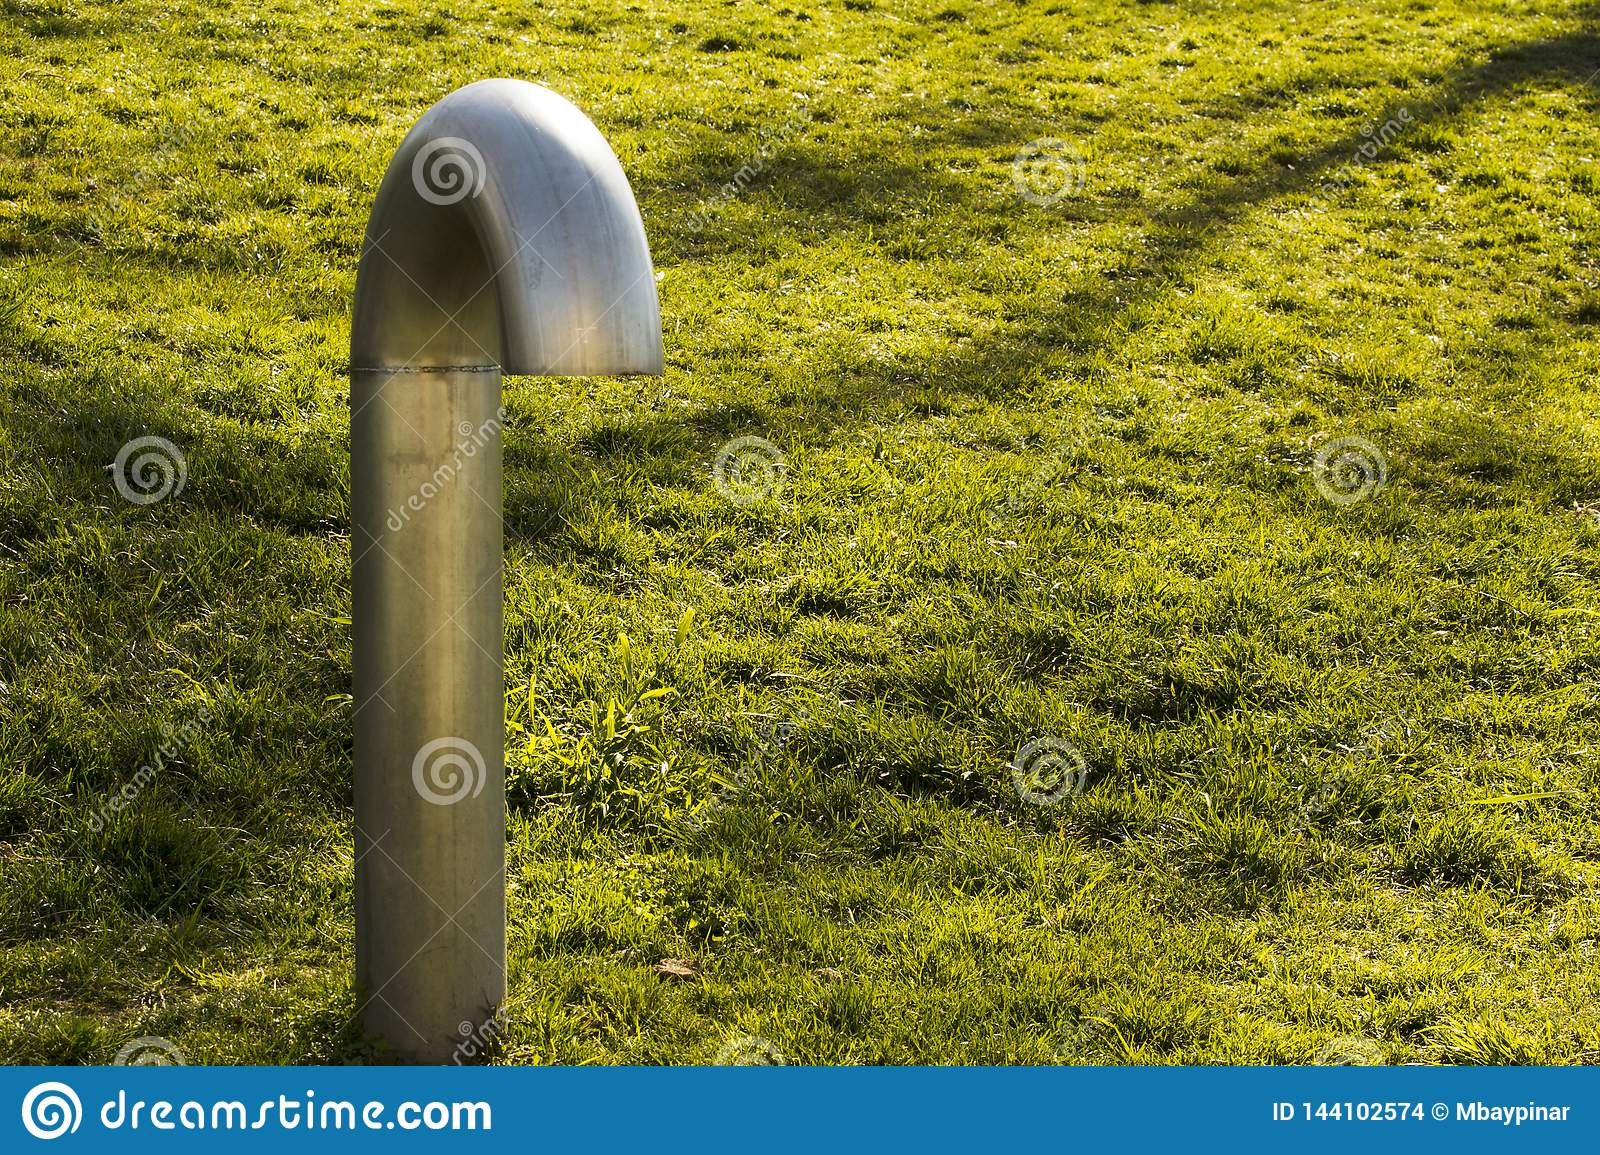 A solitaire ventilation lamp faces down on green grass. Loneliness, submission, bowing to life concepts.